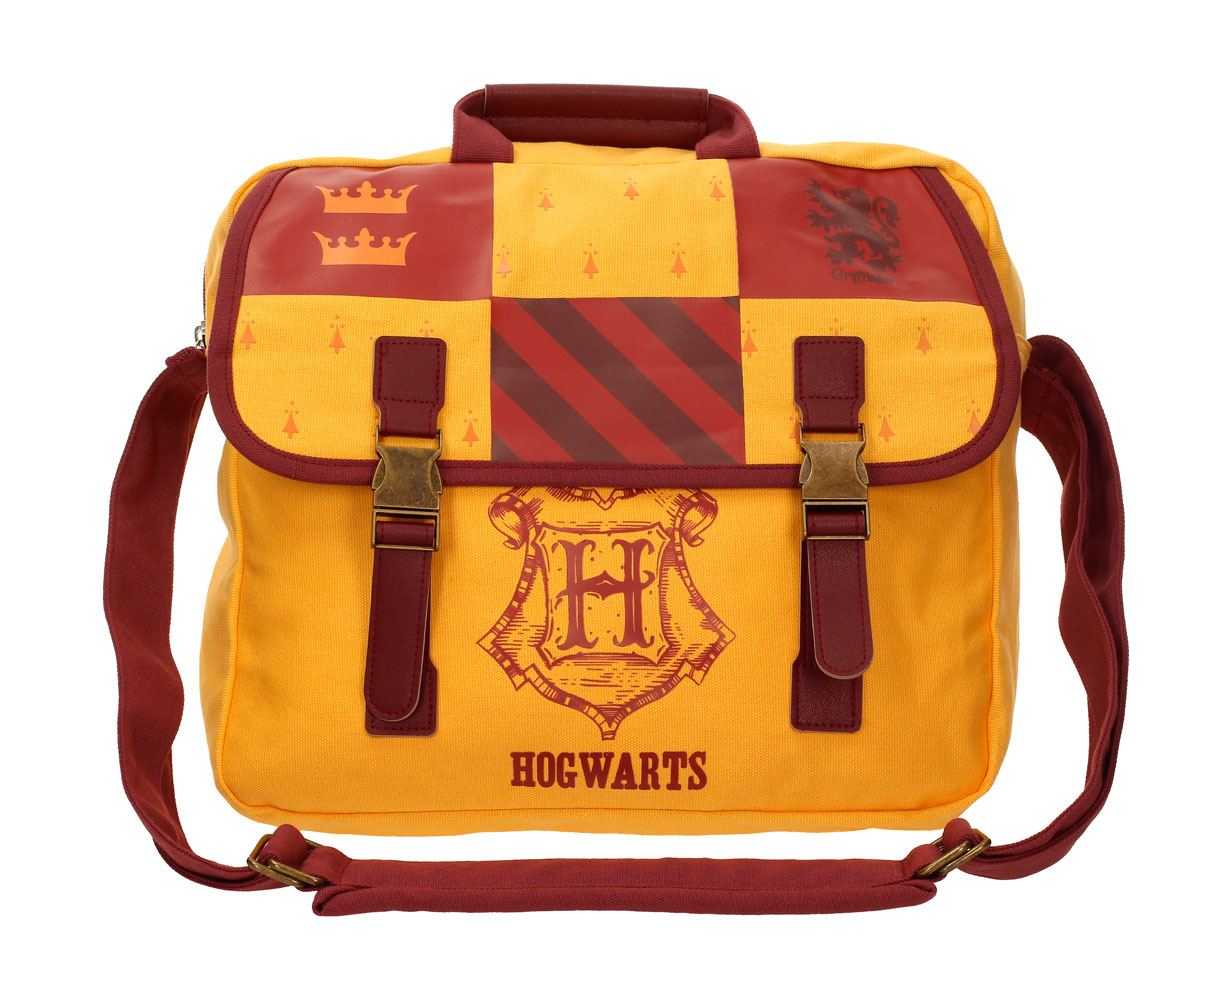 Harry Potter Canvas Bag Gryffindor